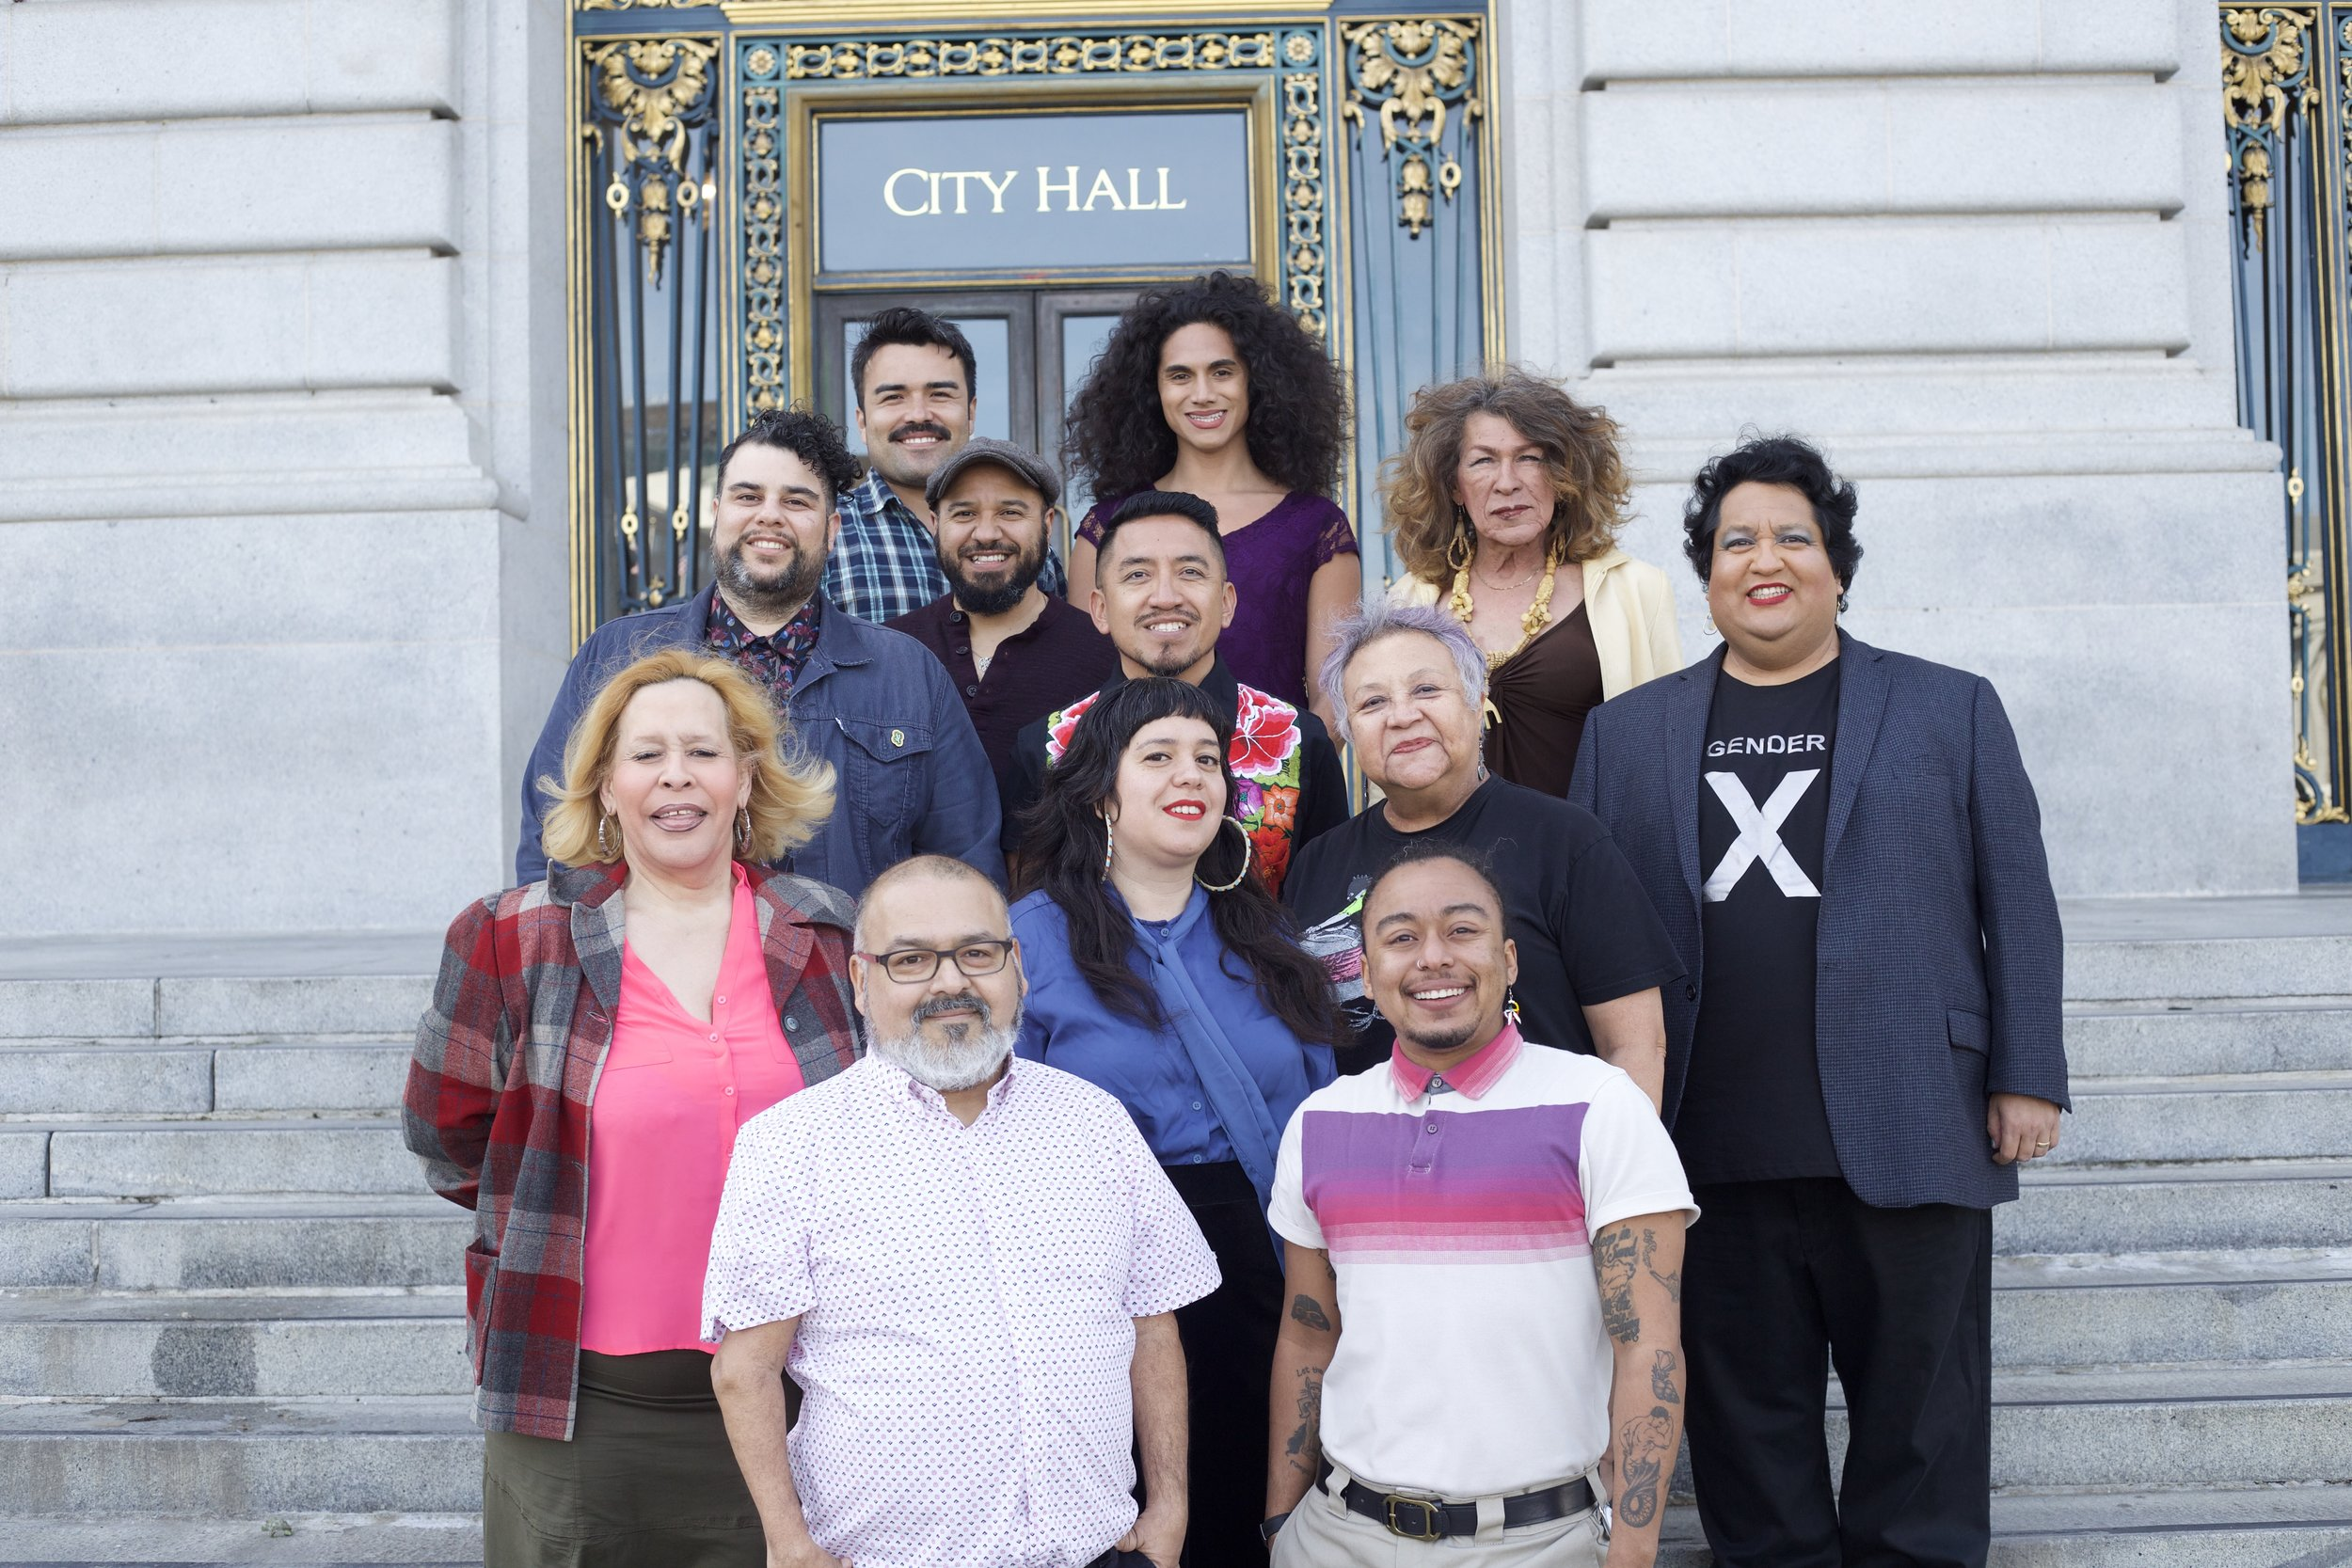 Curator Tina Valentin Aguirre and exhibition collaborators. Top row: Fabian Echevarria and Shane Zaldivar. Second row: Prado Gomez and Donna Personna. Third row: Rigoberto Marquez, Angel Fabian and Tina Valentin Aguirre. Fourth row: Adela Vazquez, Natalia Vigil and Olga Talamante. Bottom row: Lito Sandoval and Mason J. Smith. Photo by Fabian Echevarria/Bill Jennings.